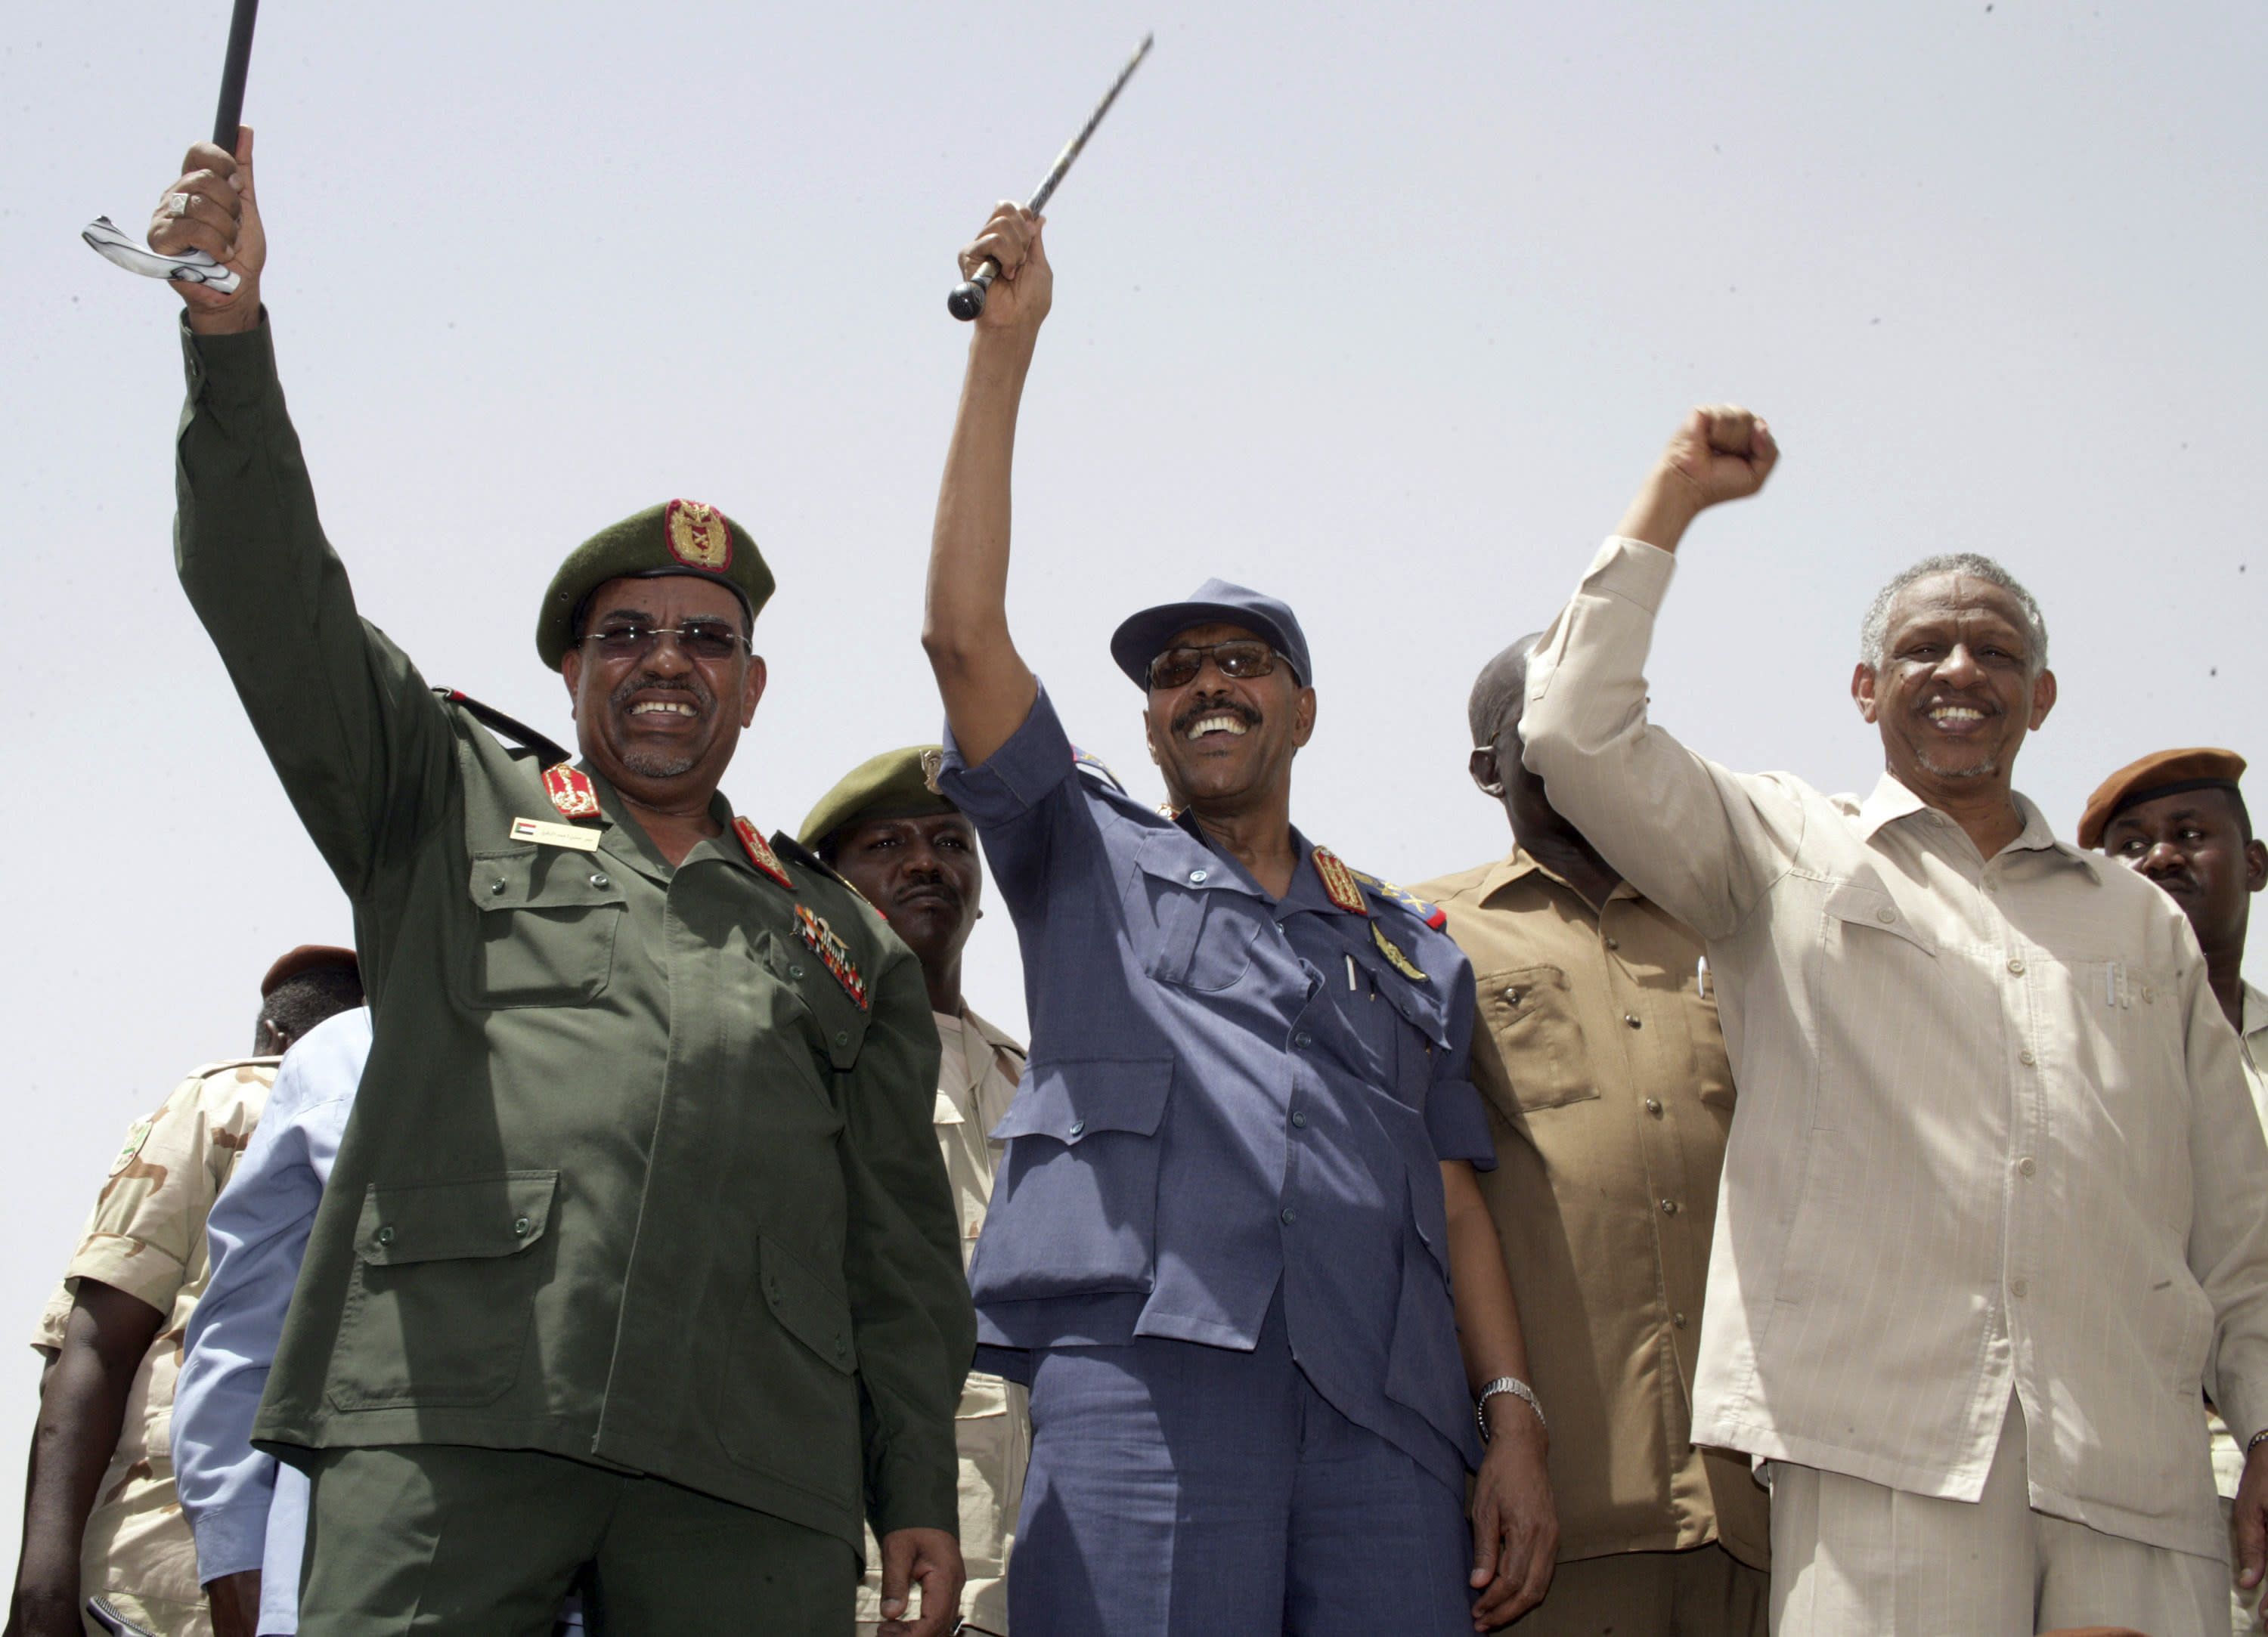 FILE - In this May 14, 2008 file photo, then Sudan's President Omar al-Bashir, Defense Minister Gen. Abdul-Rahim Mohammed Hussein, and Deputy Chairman of the National Congress Party Nafi Ali Nafi, from left to right, address a state-orchestrated rally in the capital Khartoum, Sudan. Activists are calling for mass protests in the capital, Khartoum, and elsewhere across the country to demand the disbanding of the National Congress Party. The Sudanese Professionals' Association, which spearheaded the uprising against Bashir's rule, said the protests Monday, Oct. 21, 2019, will also renew demands to step up an independent investigation into the deadly break-up of protests in June. (AP Photo/Abd Raouf, File)